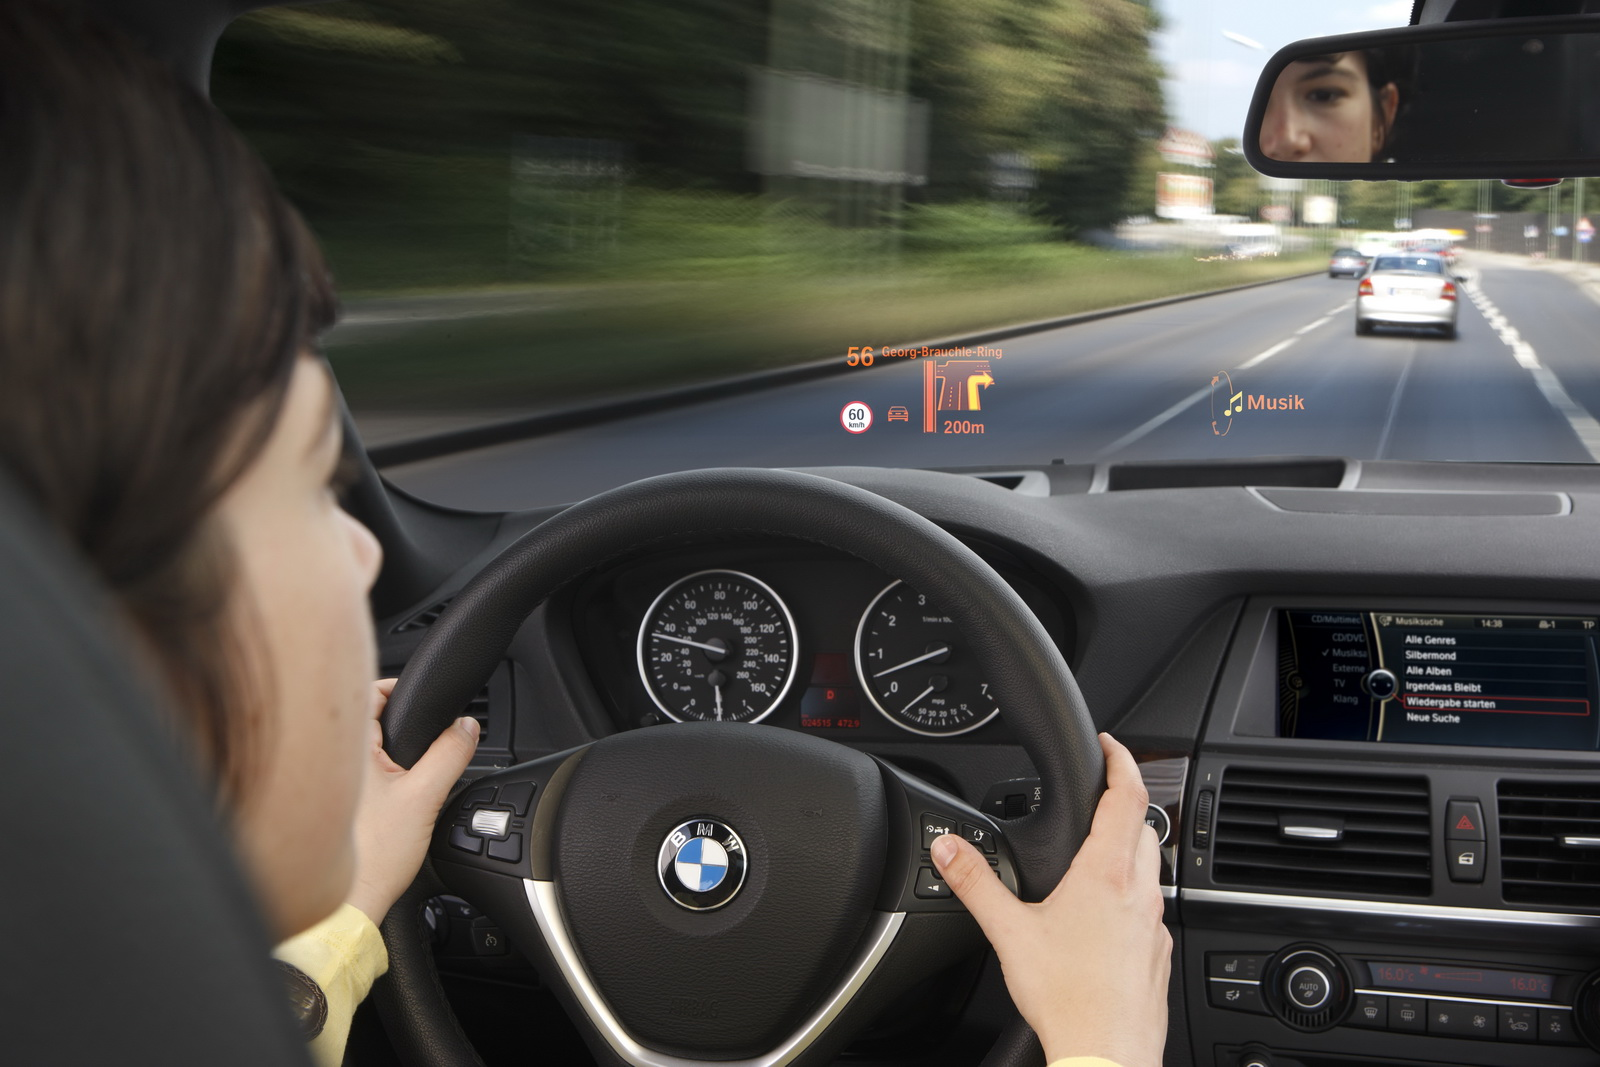 Next Gen Bmw Idrive Gets Touchscreen Augmented Reality